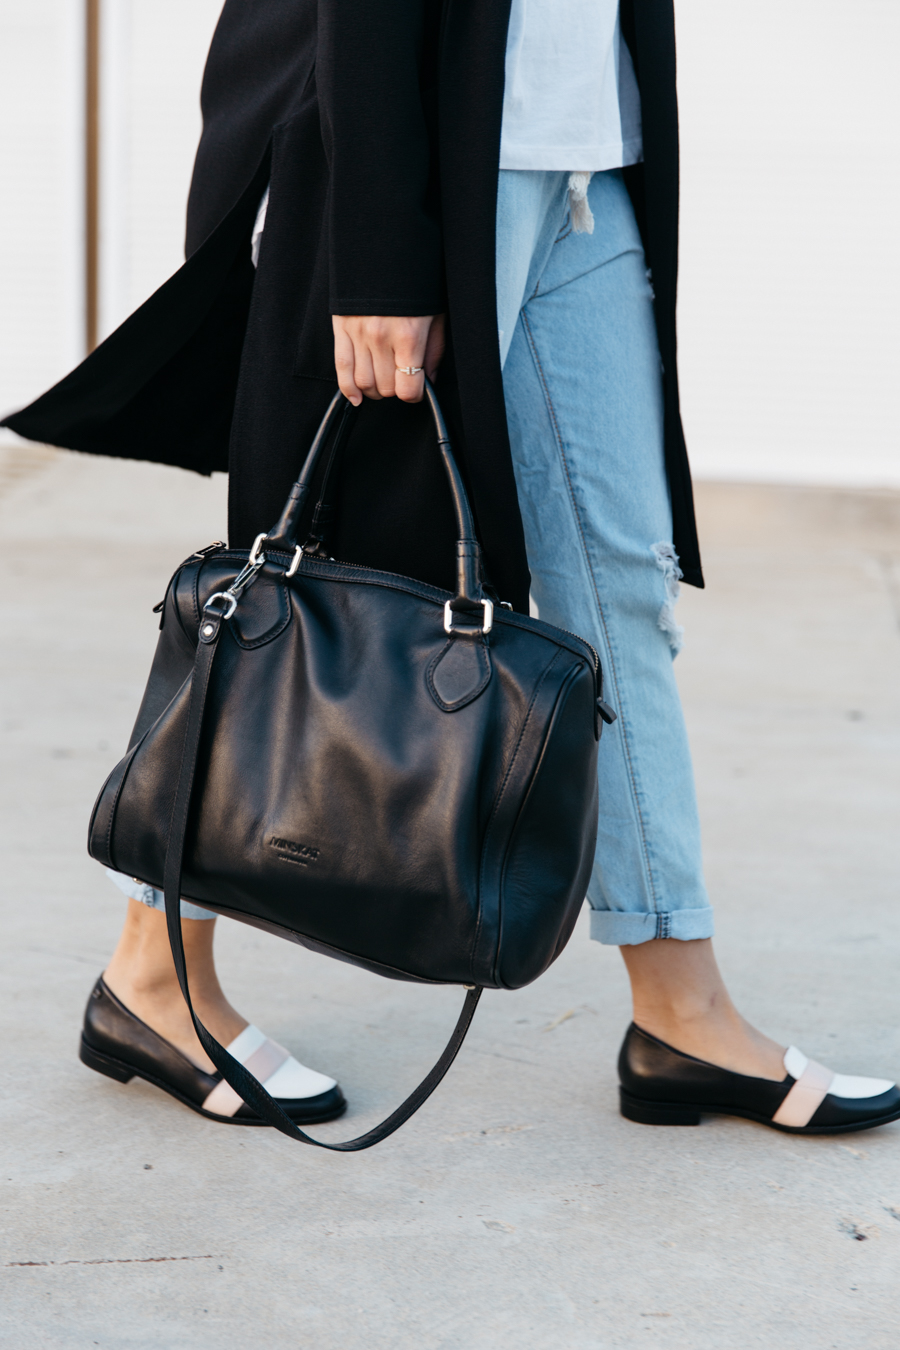 The perfect black leather bag.